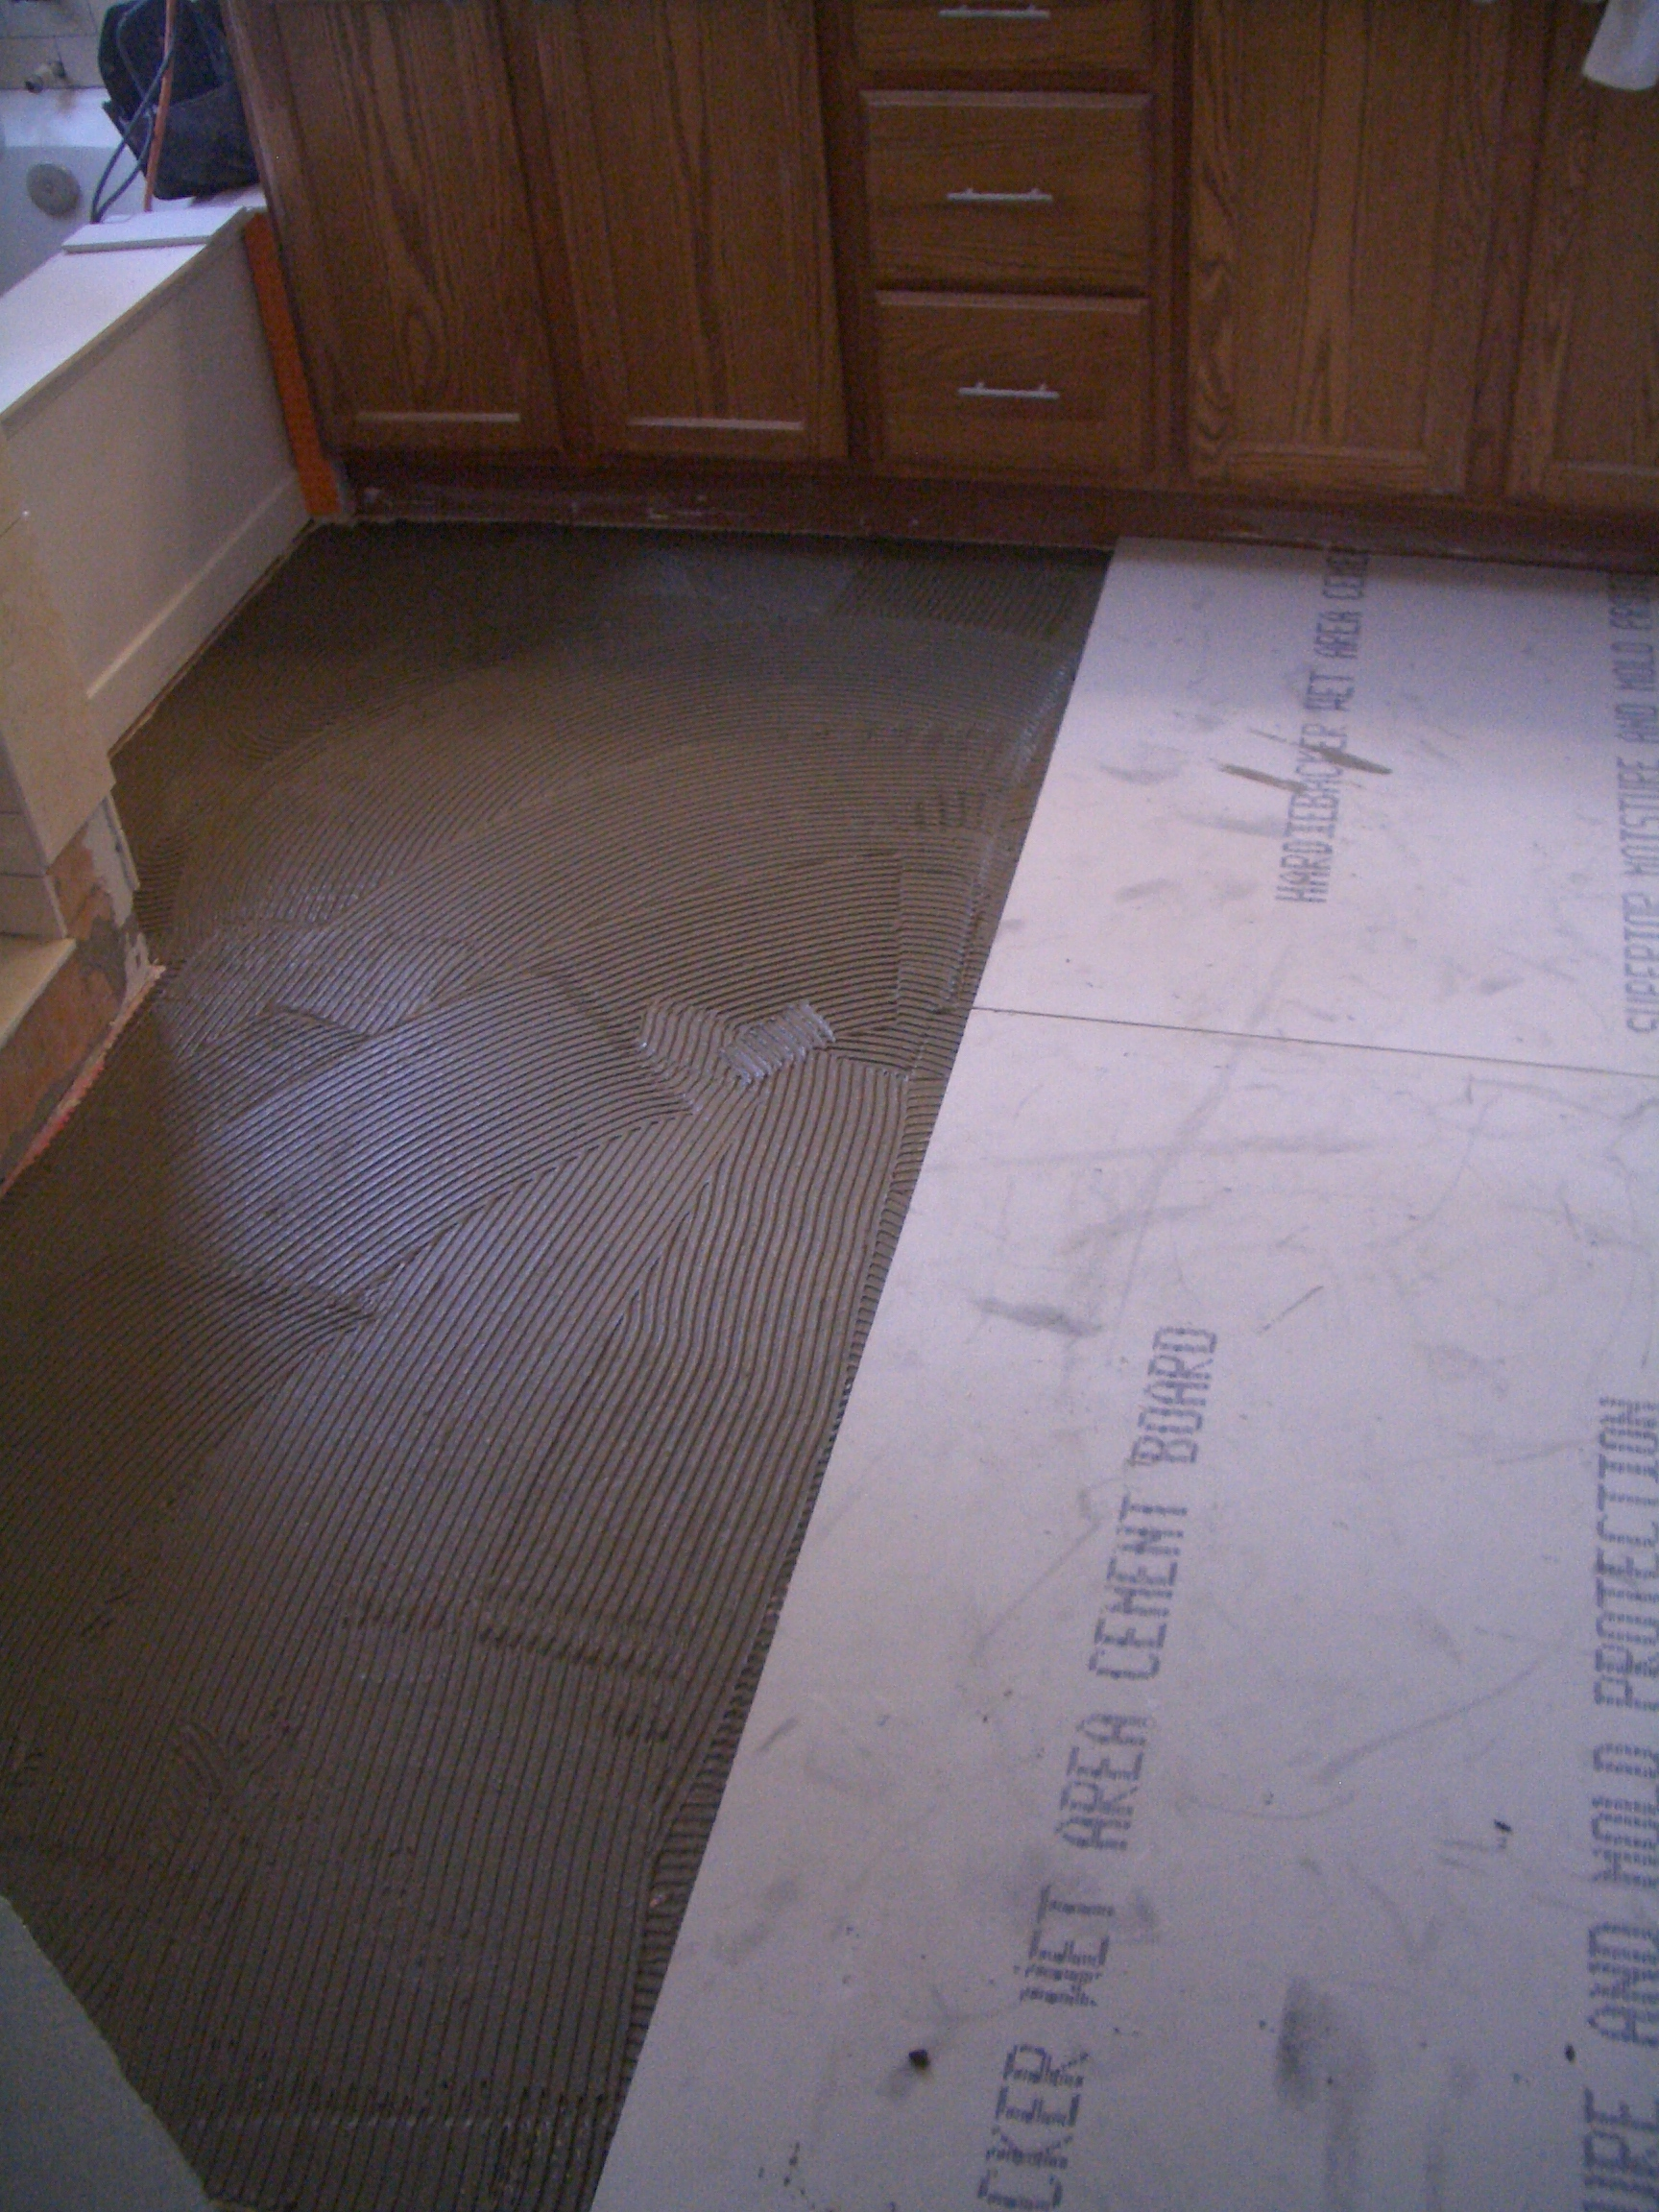 To install cement backerboard for floor tile installing thinset beneath backerboards dailygadgetfo Choice Image